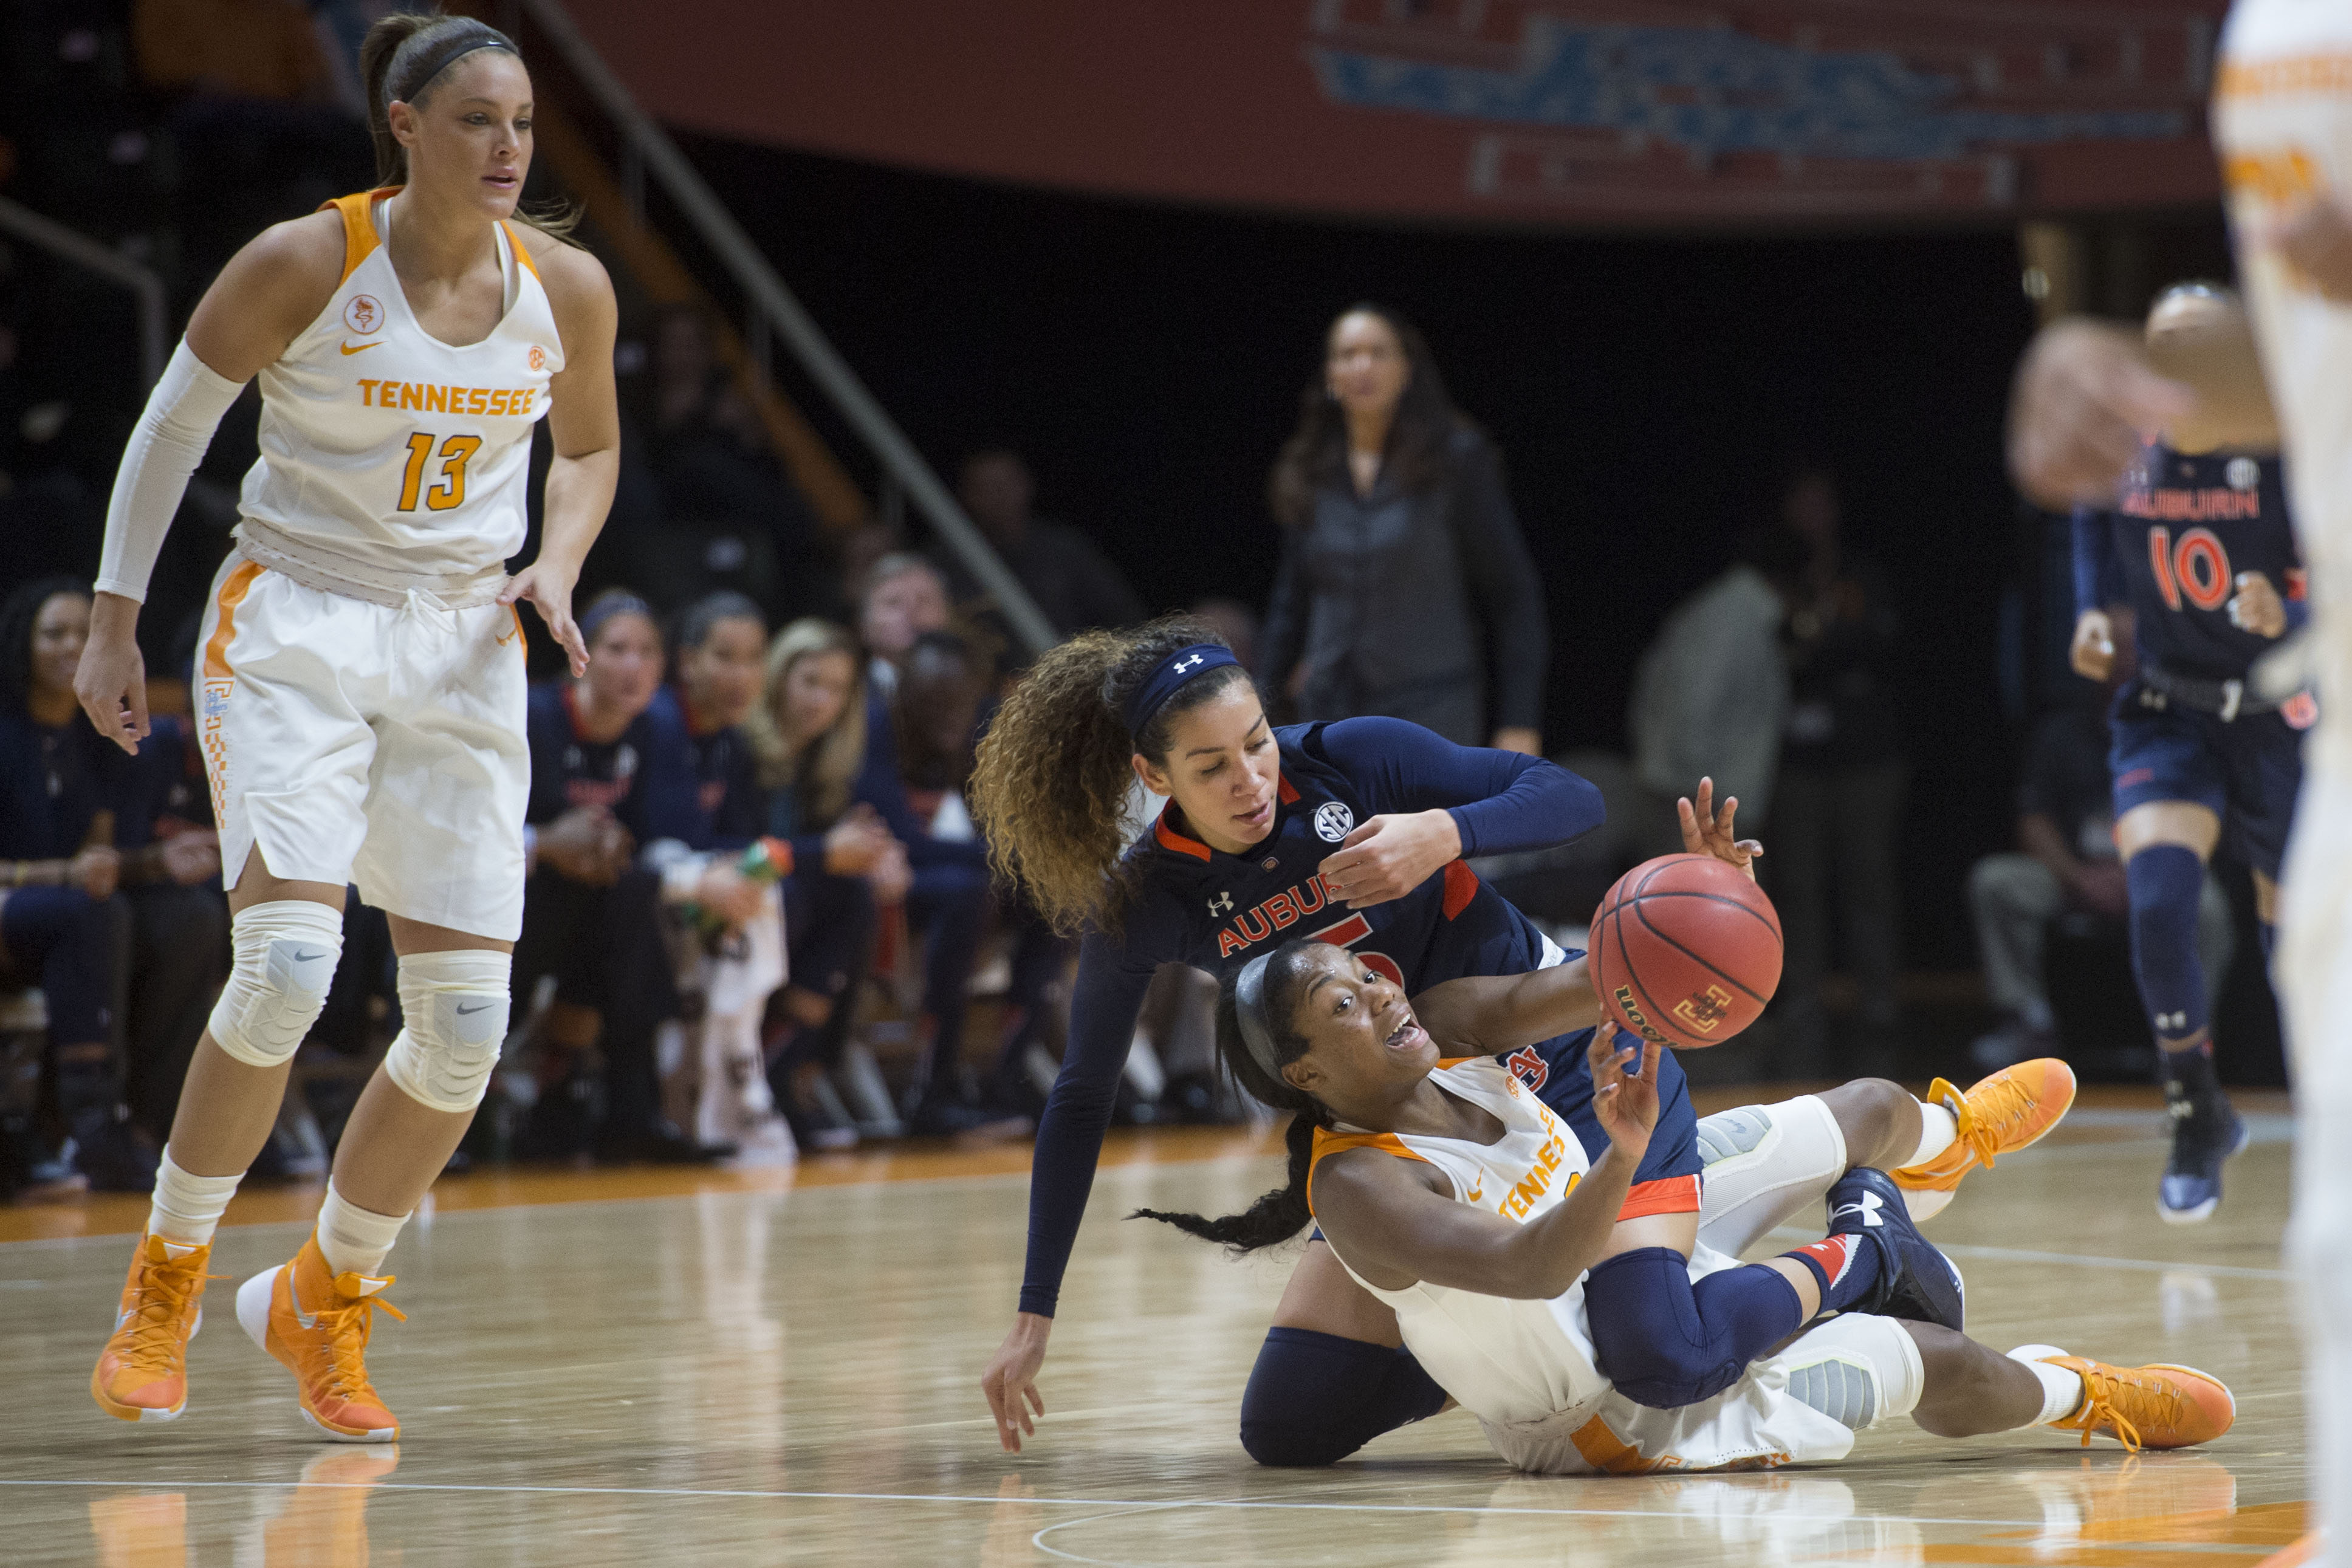 Tennessee's Jordan Reynolds passes the ball away after colliding with Auburn's Jazmine Jones during an NCAA college basketball game in Knoxville, Tenn., Sunday, Jan. 10, 2016. Tennessee defeated Auburn 79-52. (Saul Young/Knoxville News Sentinel via AP)